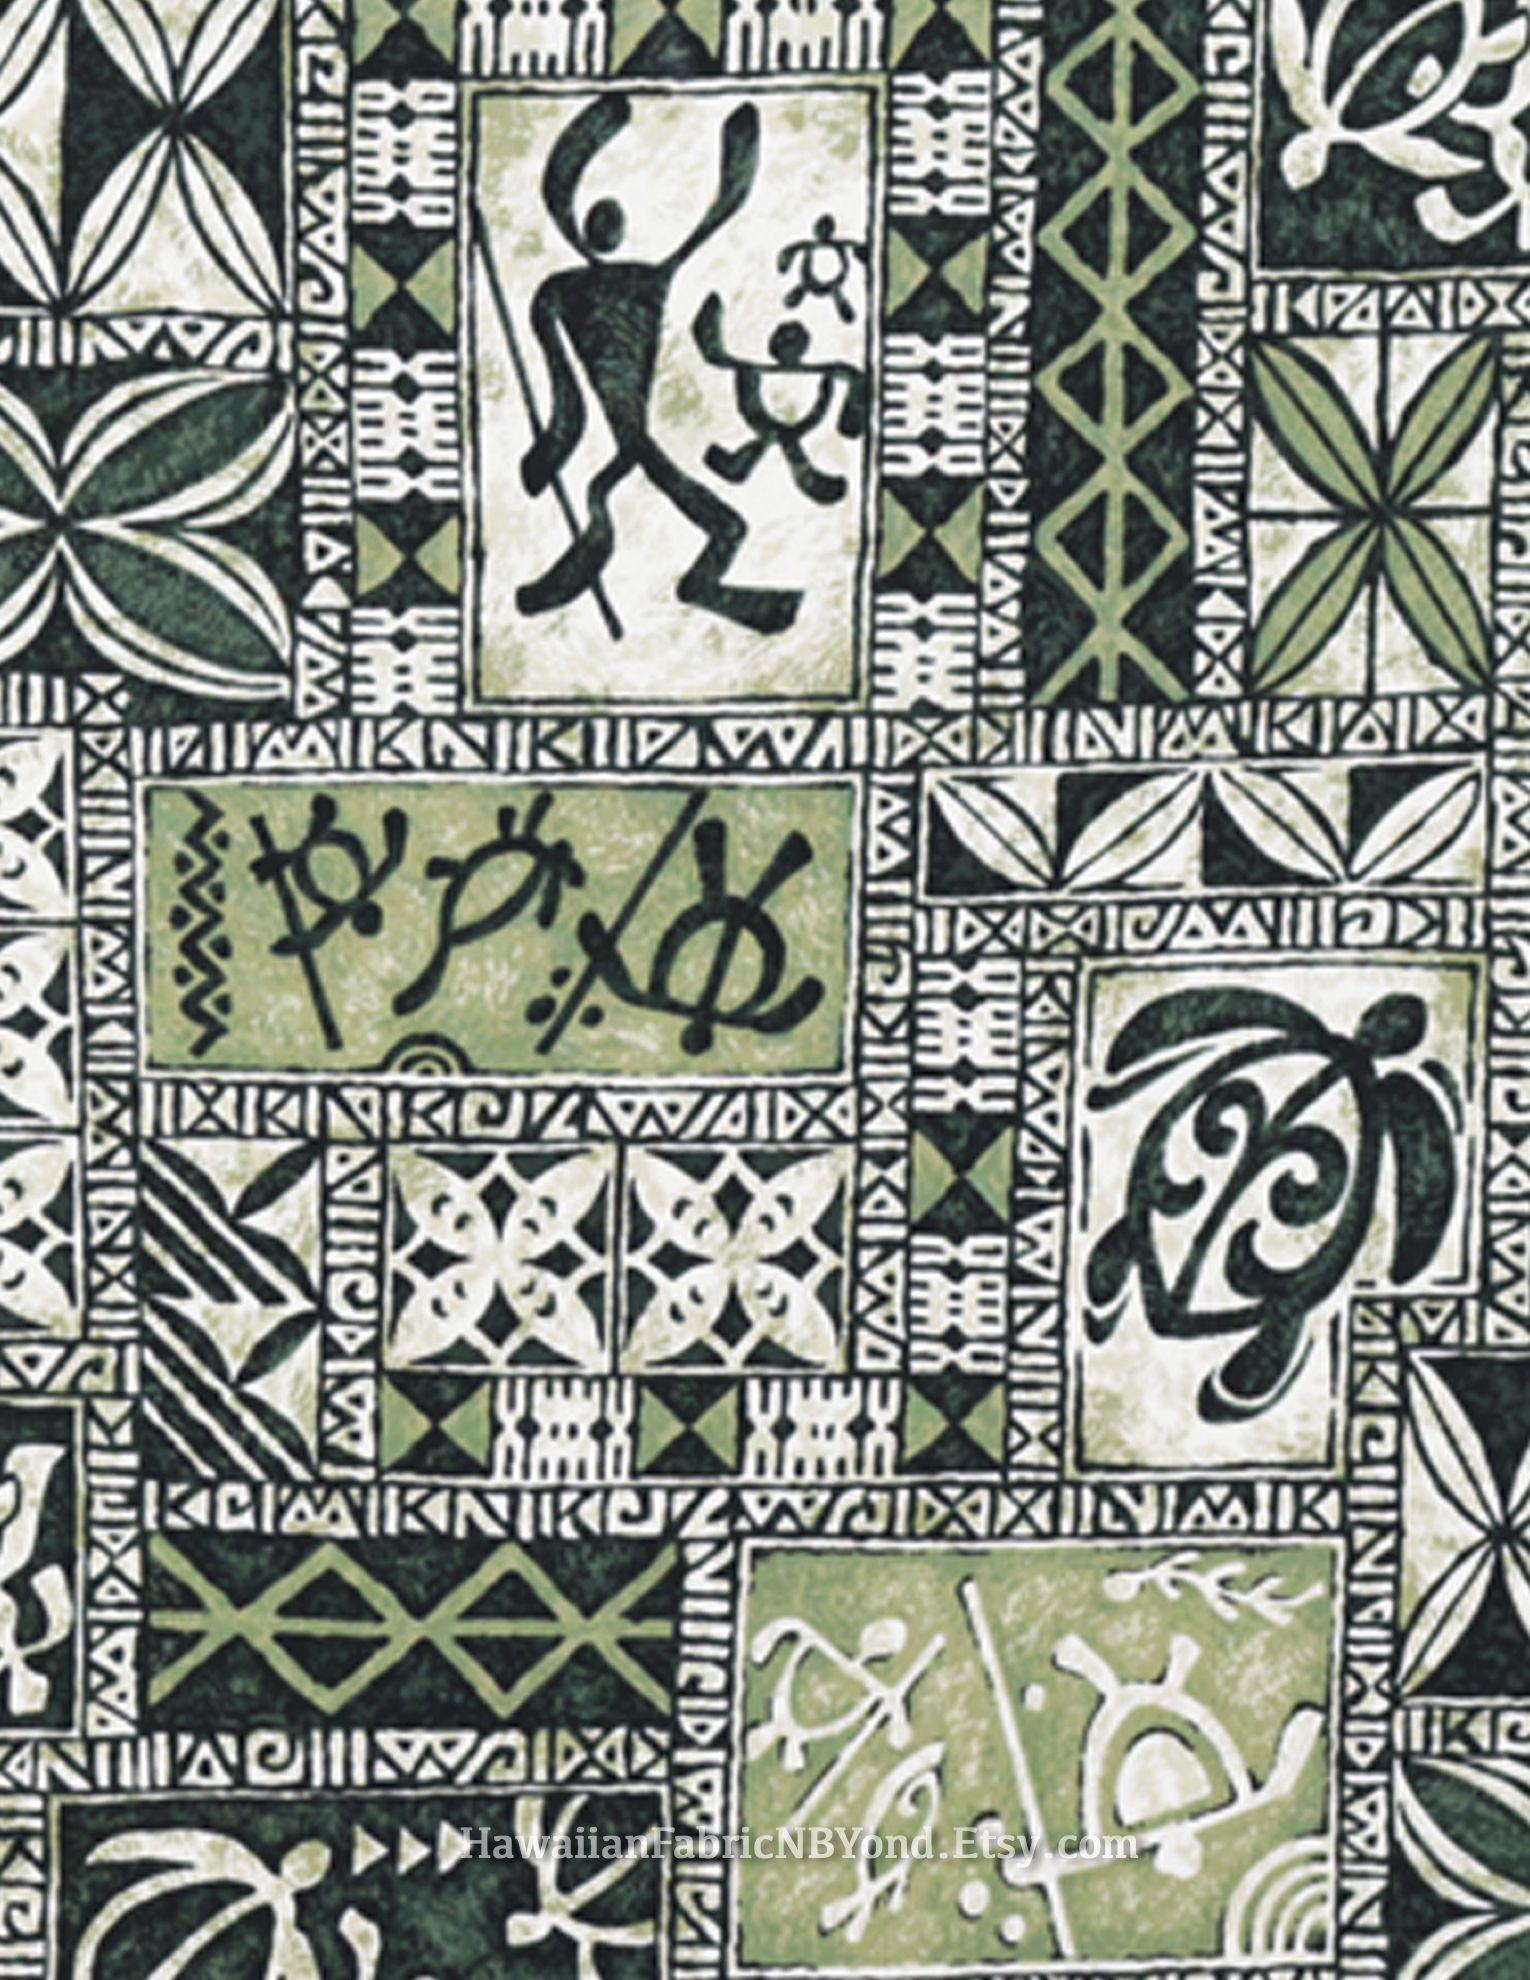 Hawaiian petroglyph fabric: Tribal tapa turtle and warriors. Check it out  at HawaiianFabricNBYond.